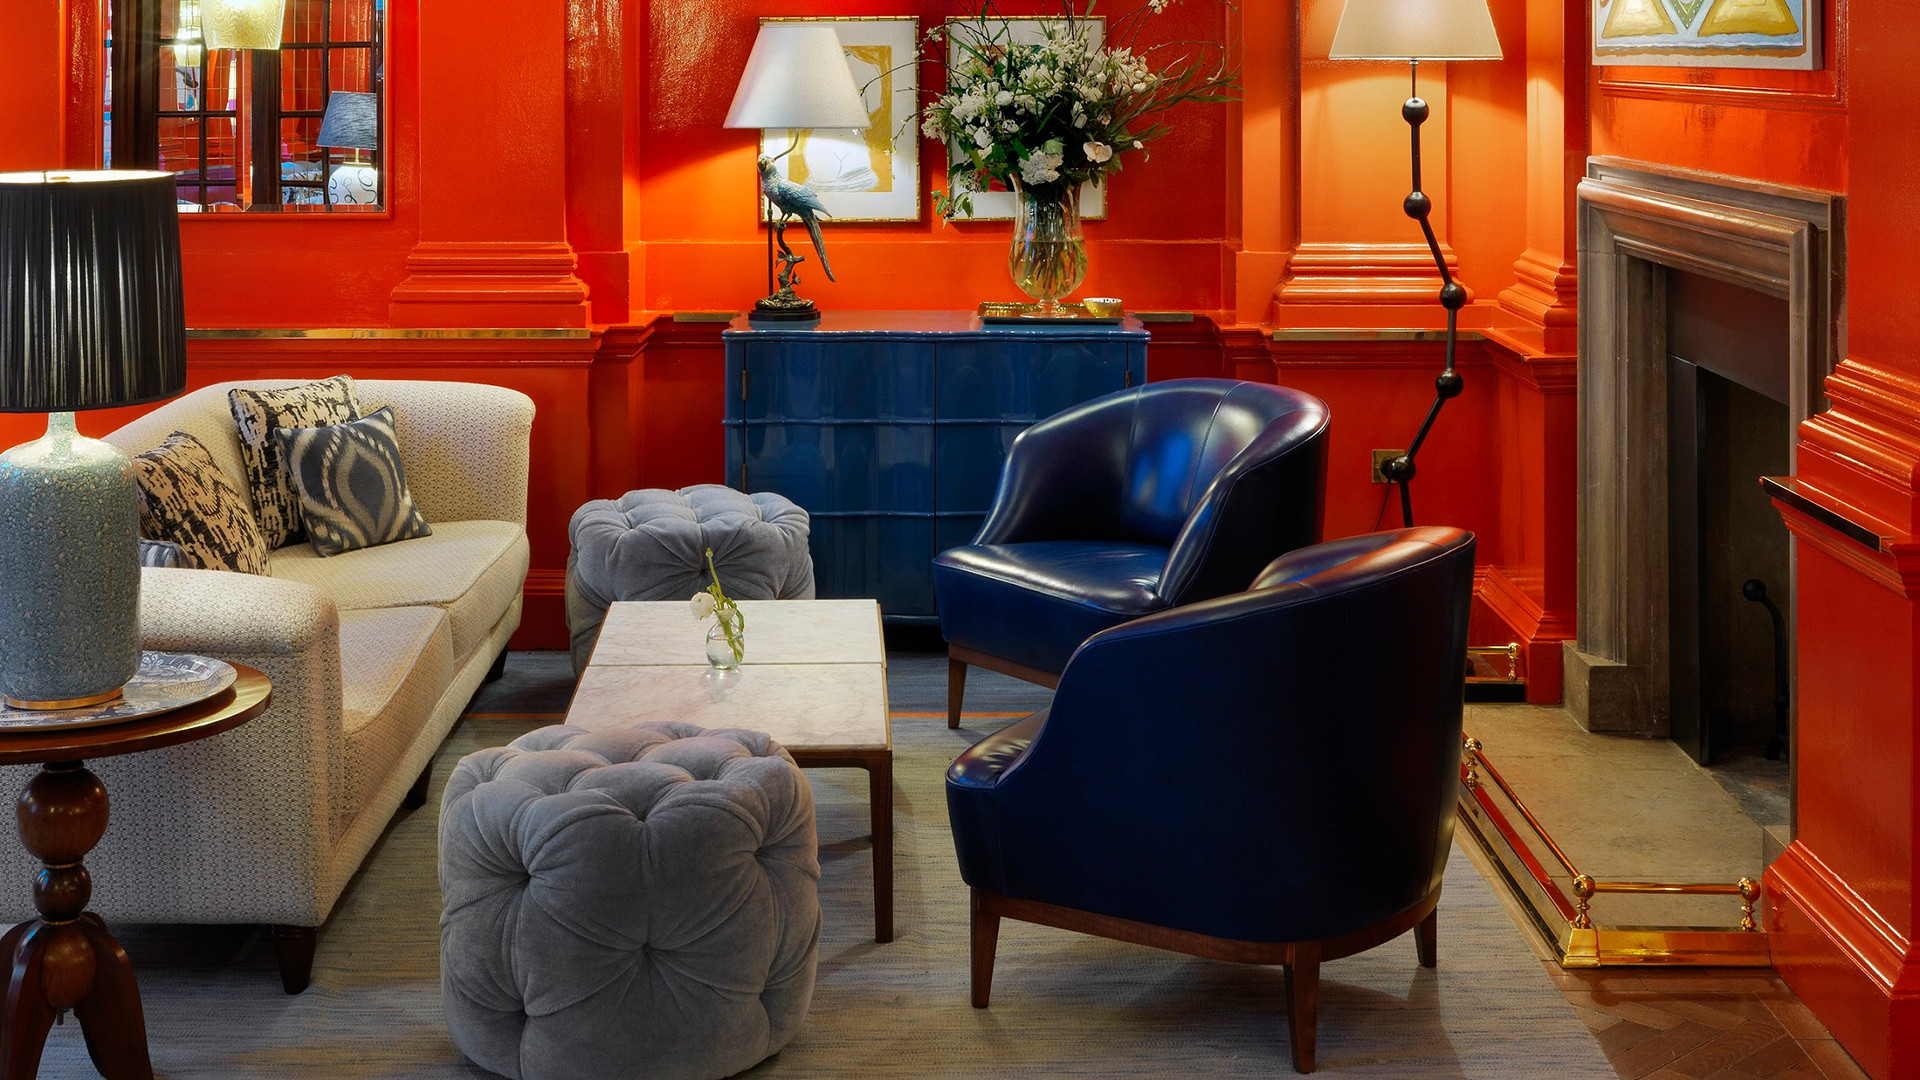 The Coral Room at The Bloomsbury Hotel